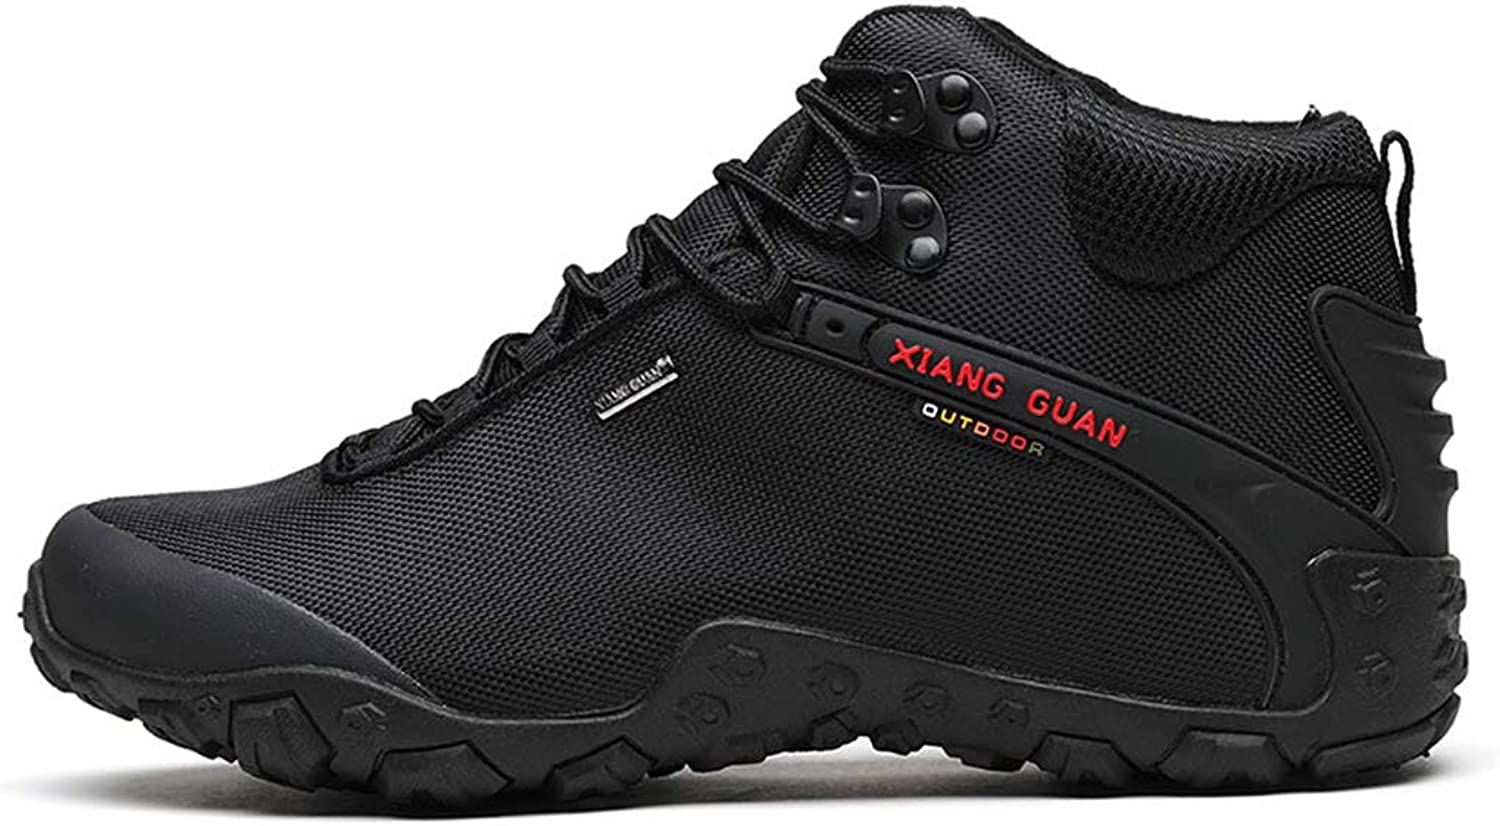 Man Hiking shoes Waterproof Sport Climbing Walking Sneaker Trekking Boot